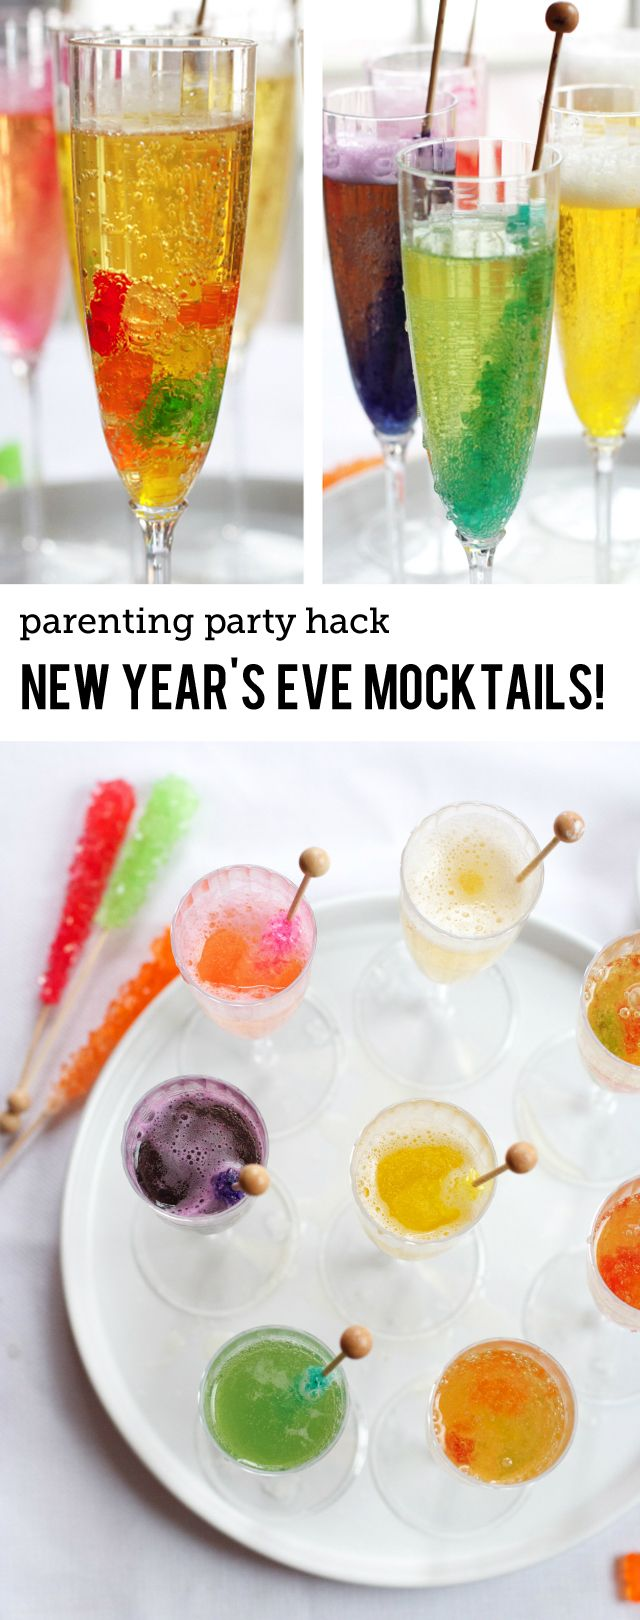 yummy mocktails for family New Year's celebration!